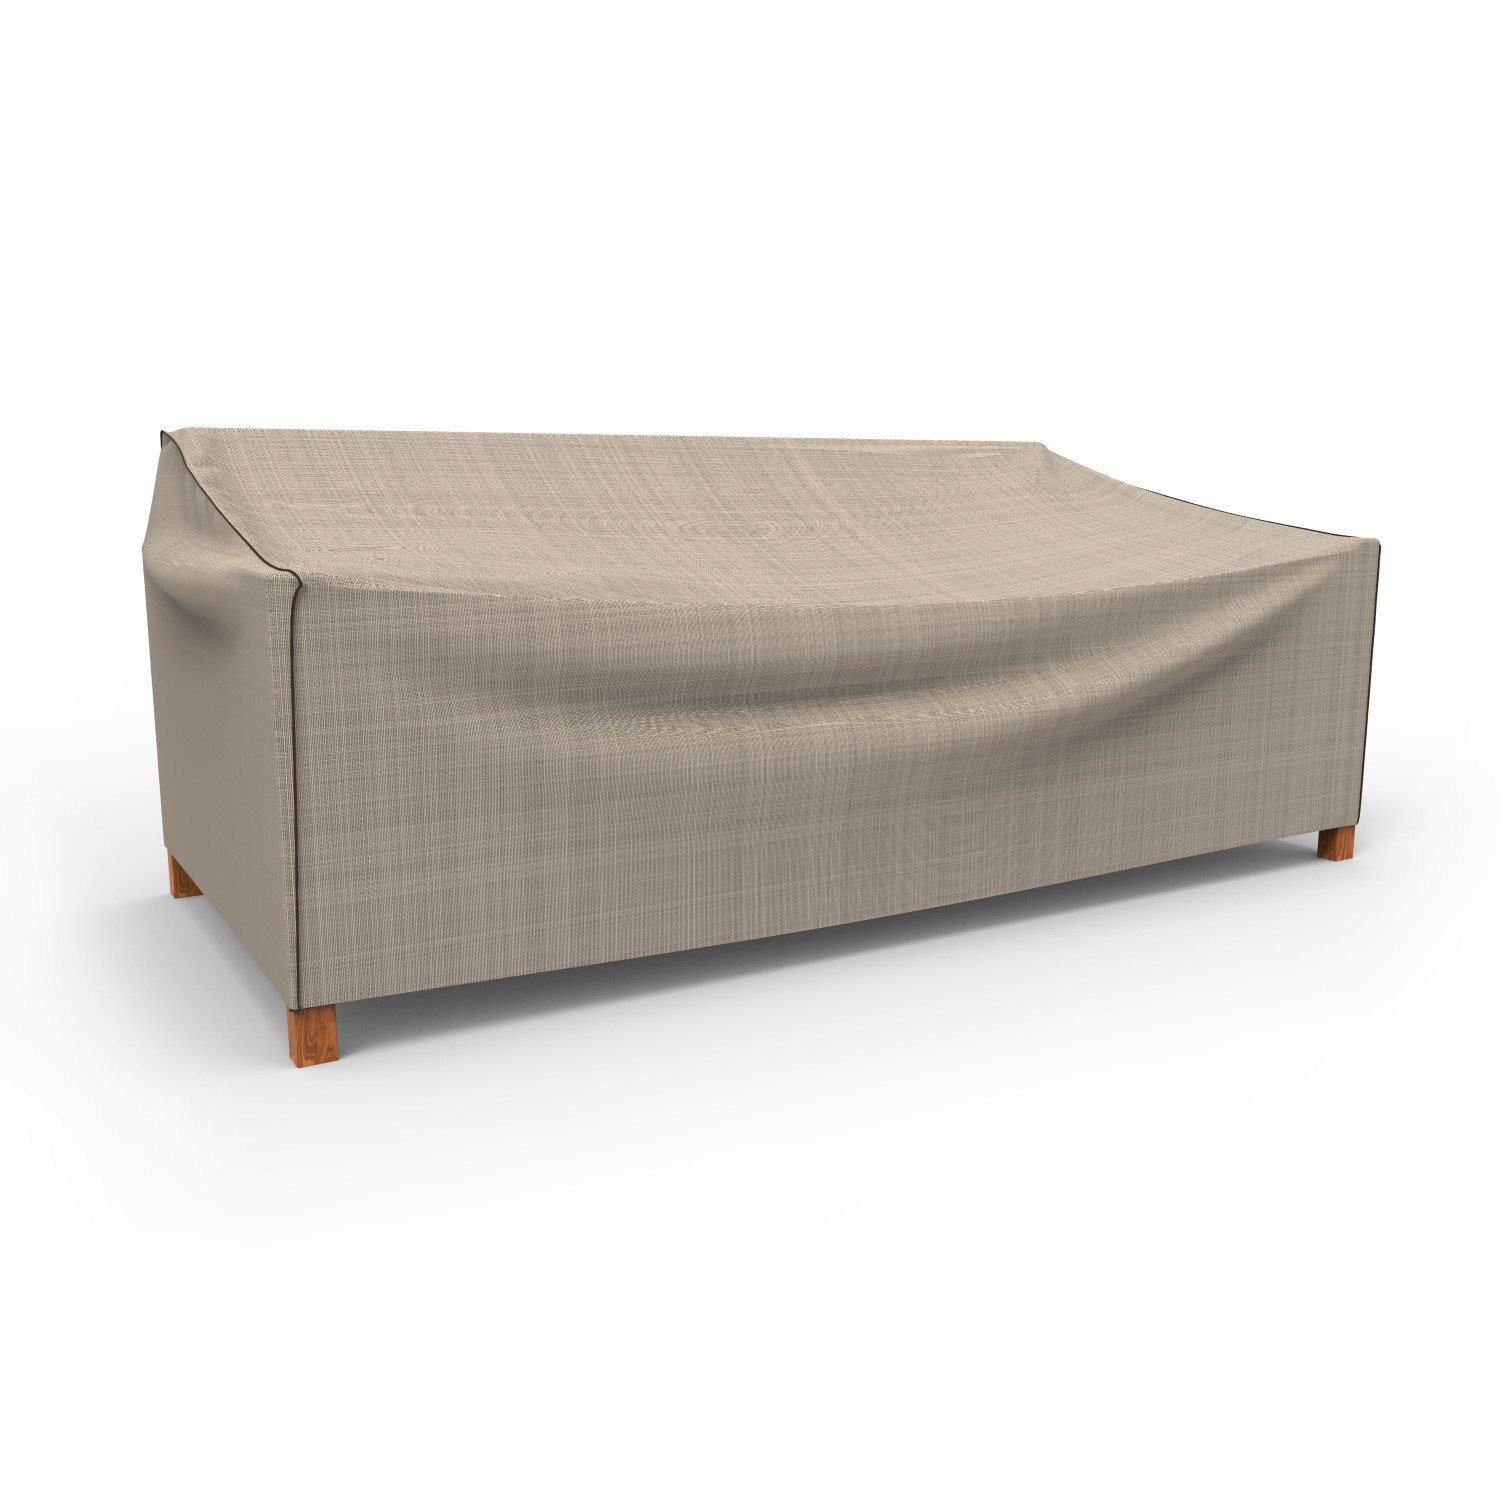 Budge English Garden Outdoor Patio Sofa Cover, Extra Large  (Tan Tweed)